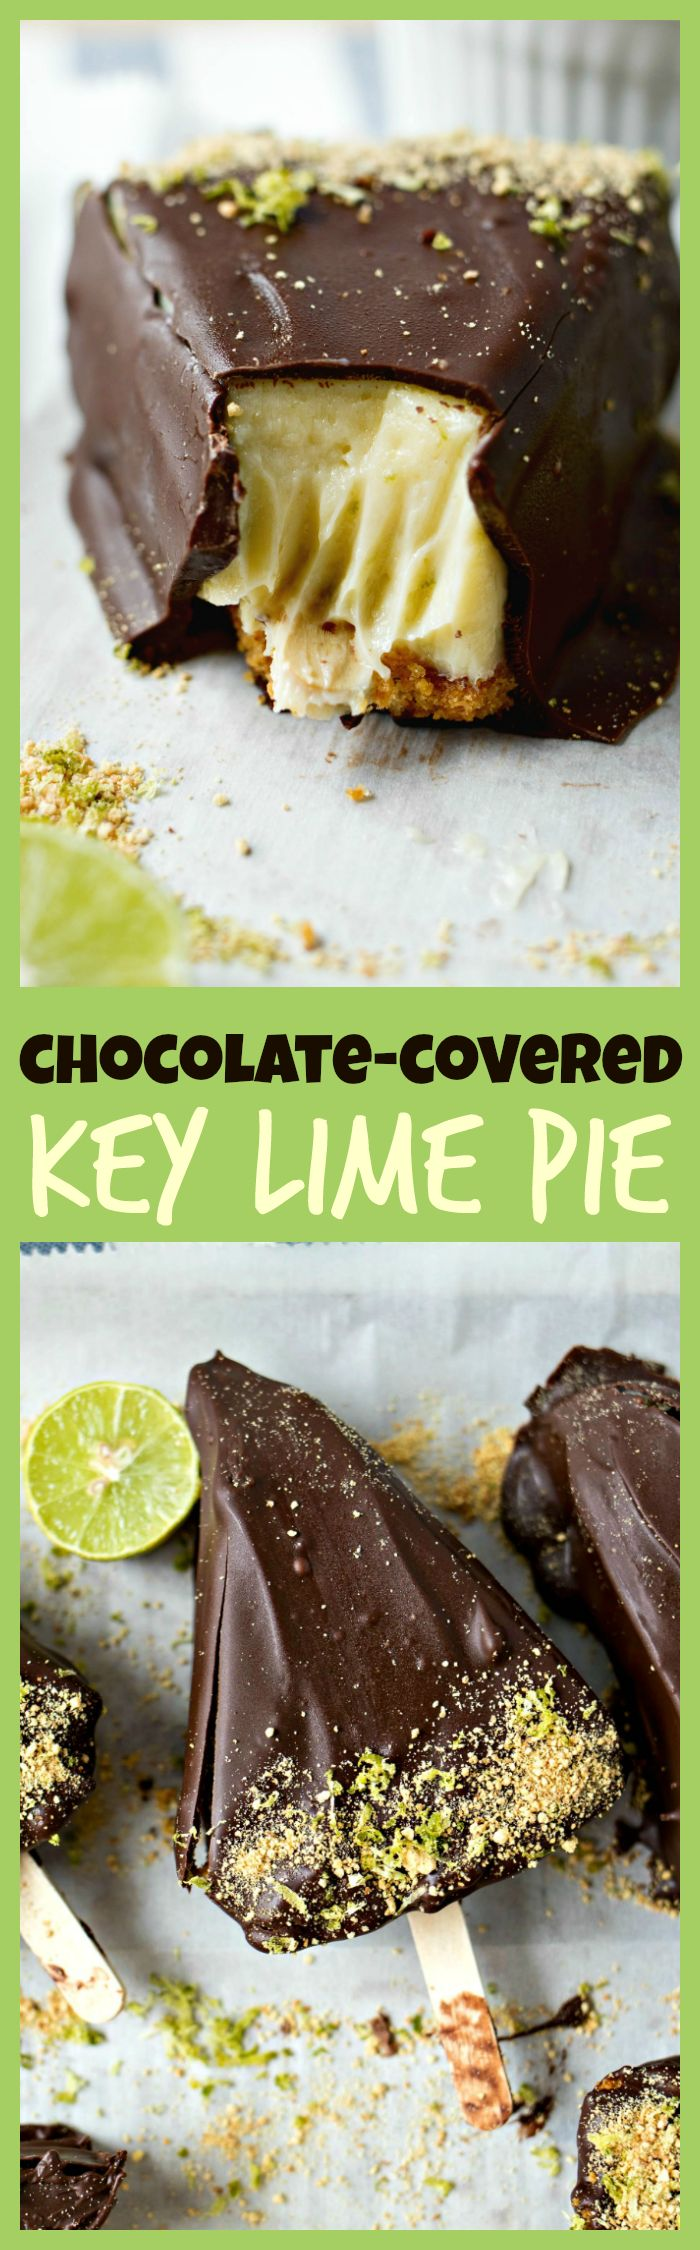 Chocolate-Covered Key Lime Pie – A rich and tangy slice of key lime pie dipped in creamy dark chocolate. It's a cool and refreshing treat to enjoy all summer long!